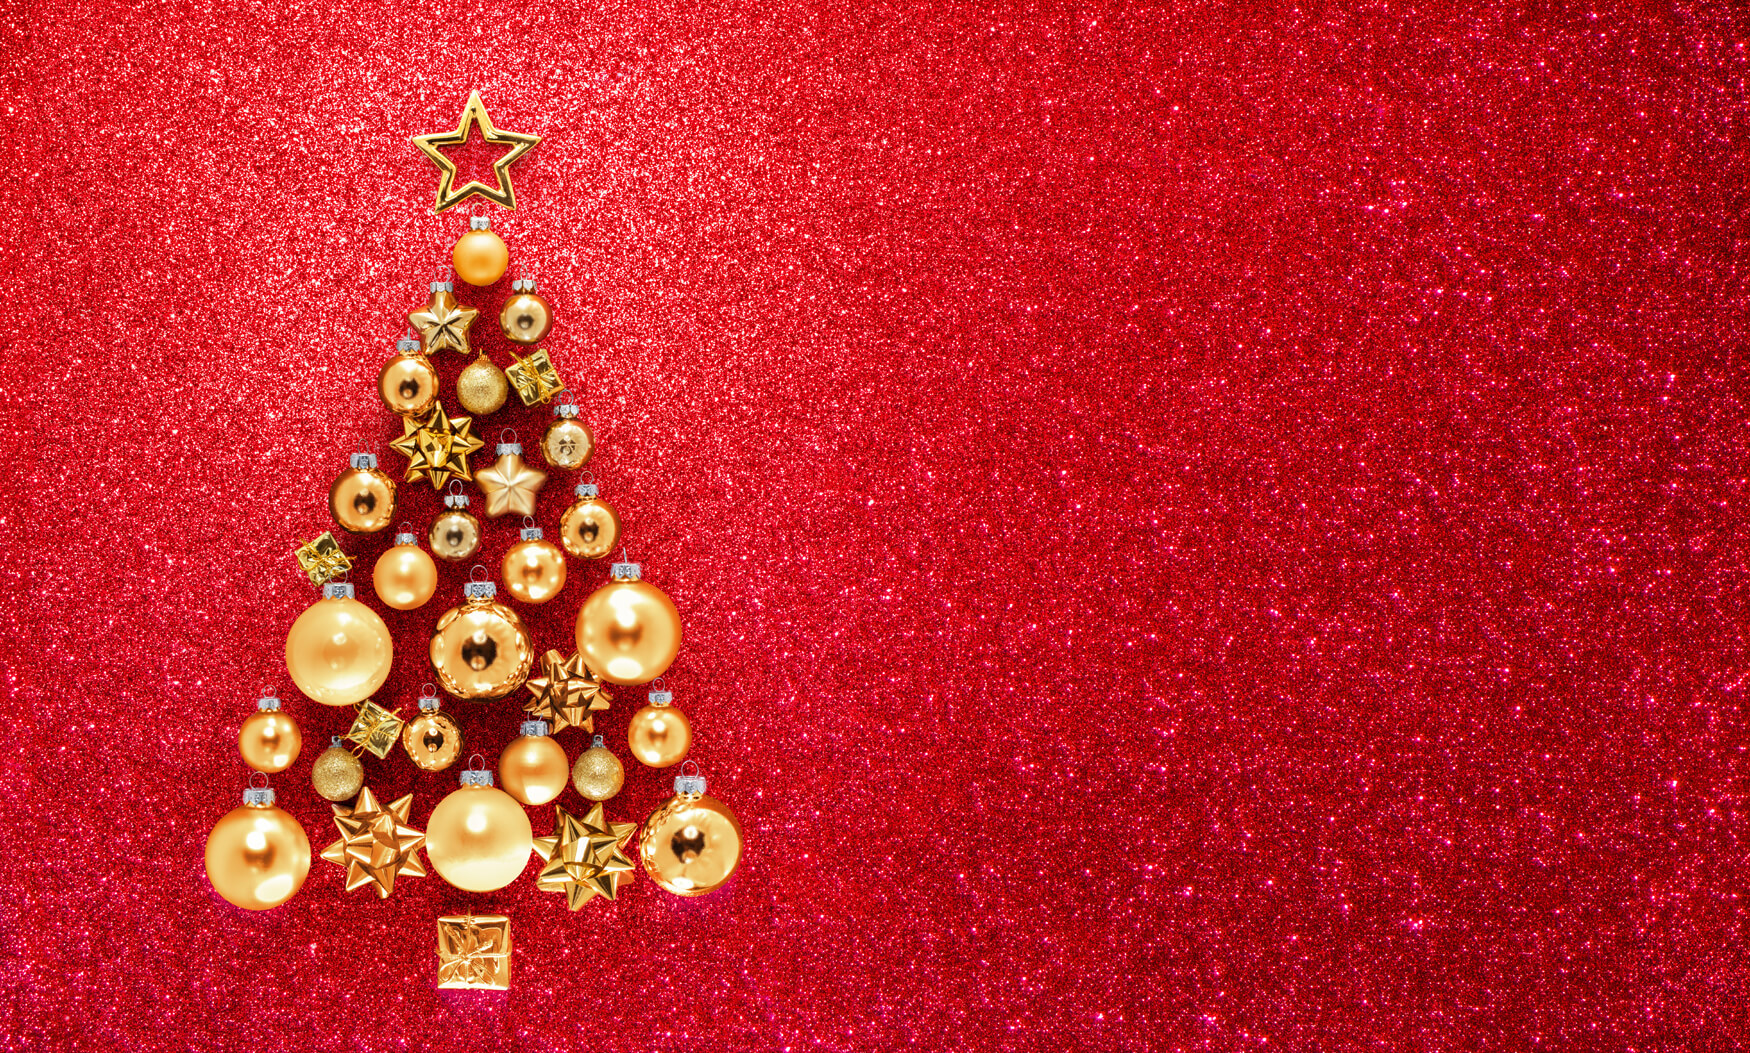 red-and-gold-Christmas-tree